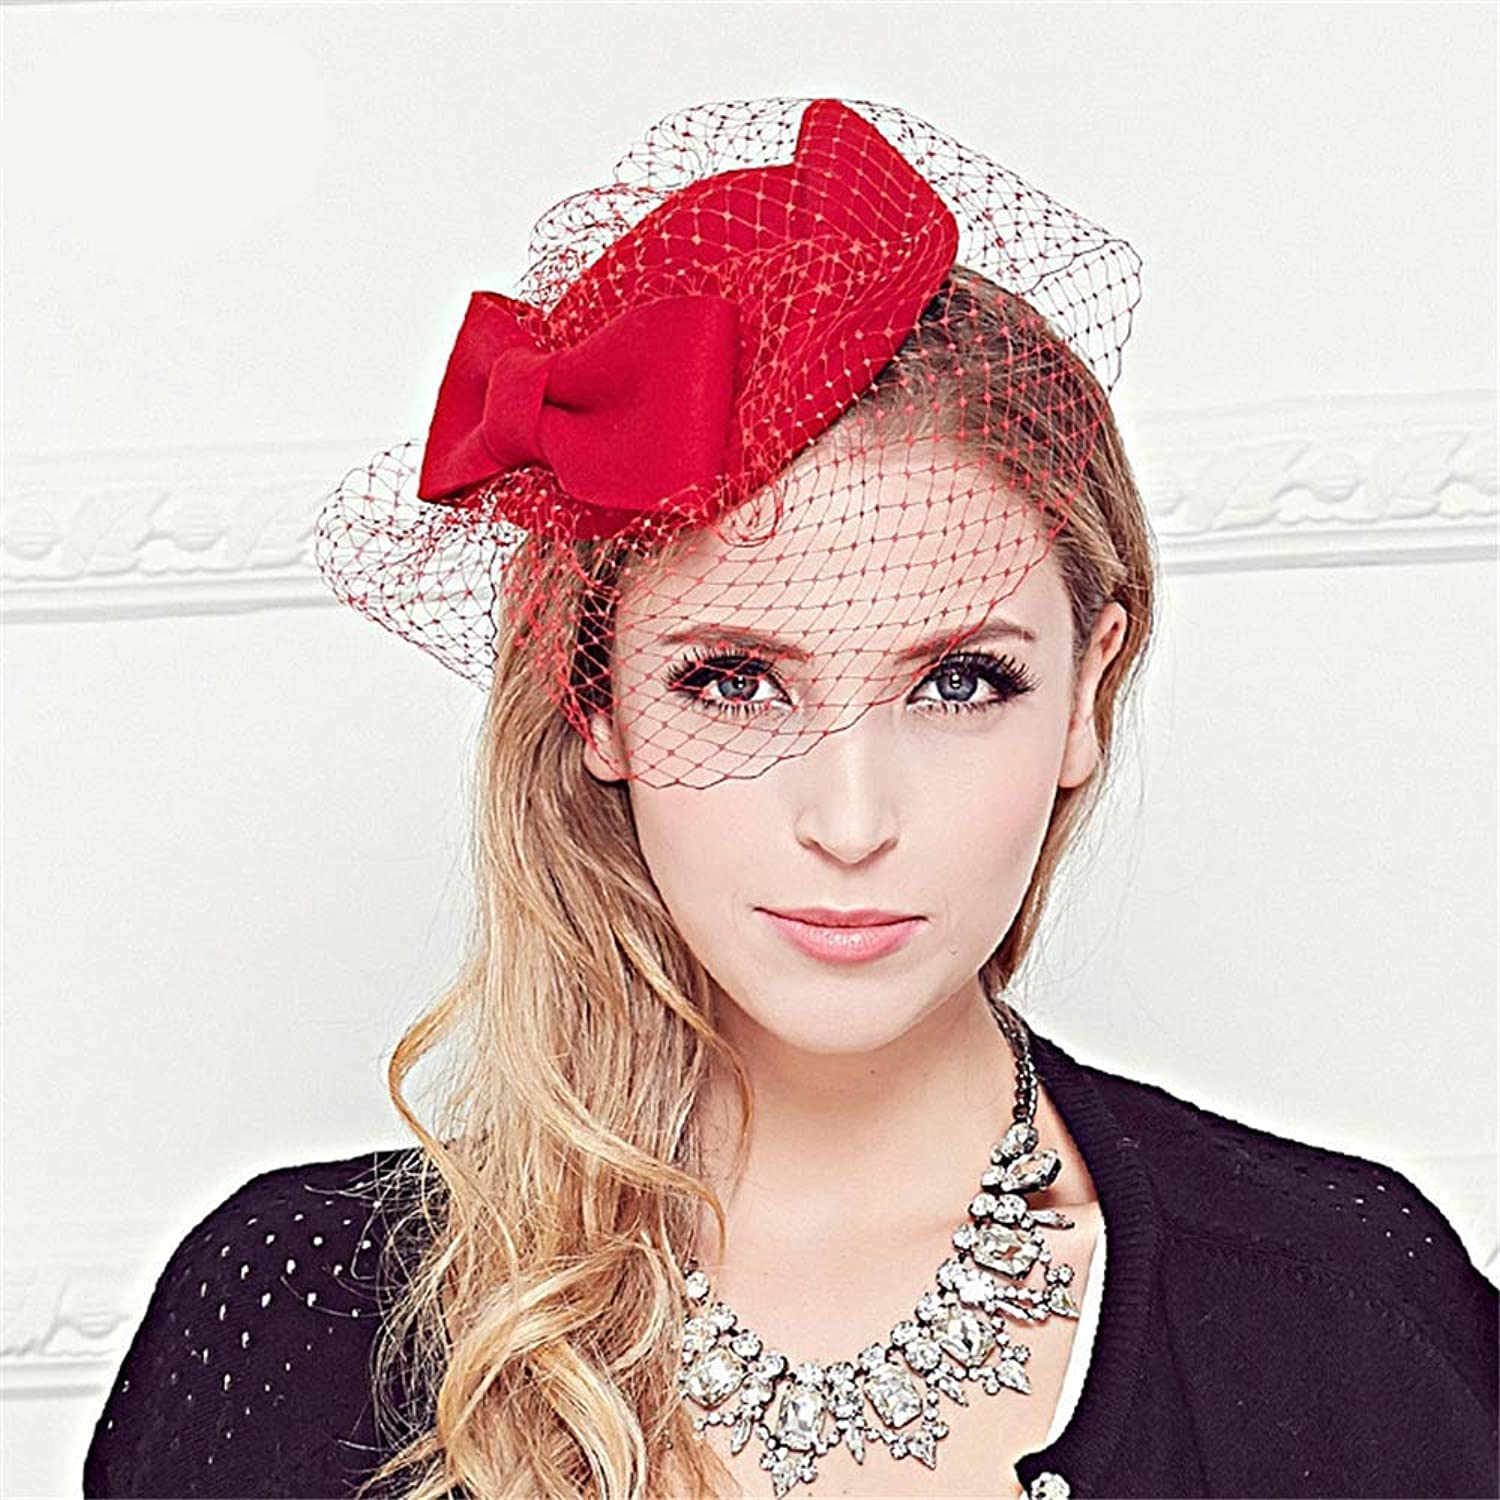 Cocktail Tea Party Headwear Party Cocktail Royal Ascot for Women Bridal Fascinators Hats 20s 50s Hat Pillbox Hat Cocktail Tea Party Headwear with Veil for Girls and Women (color   Red)